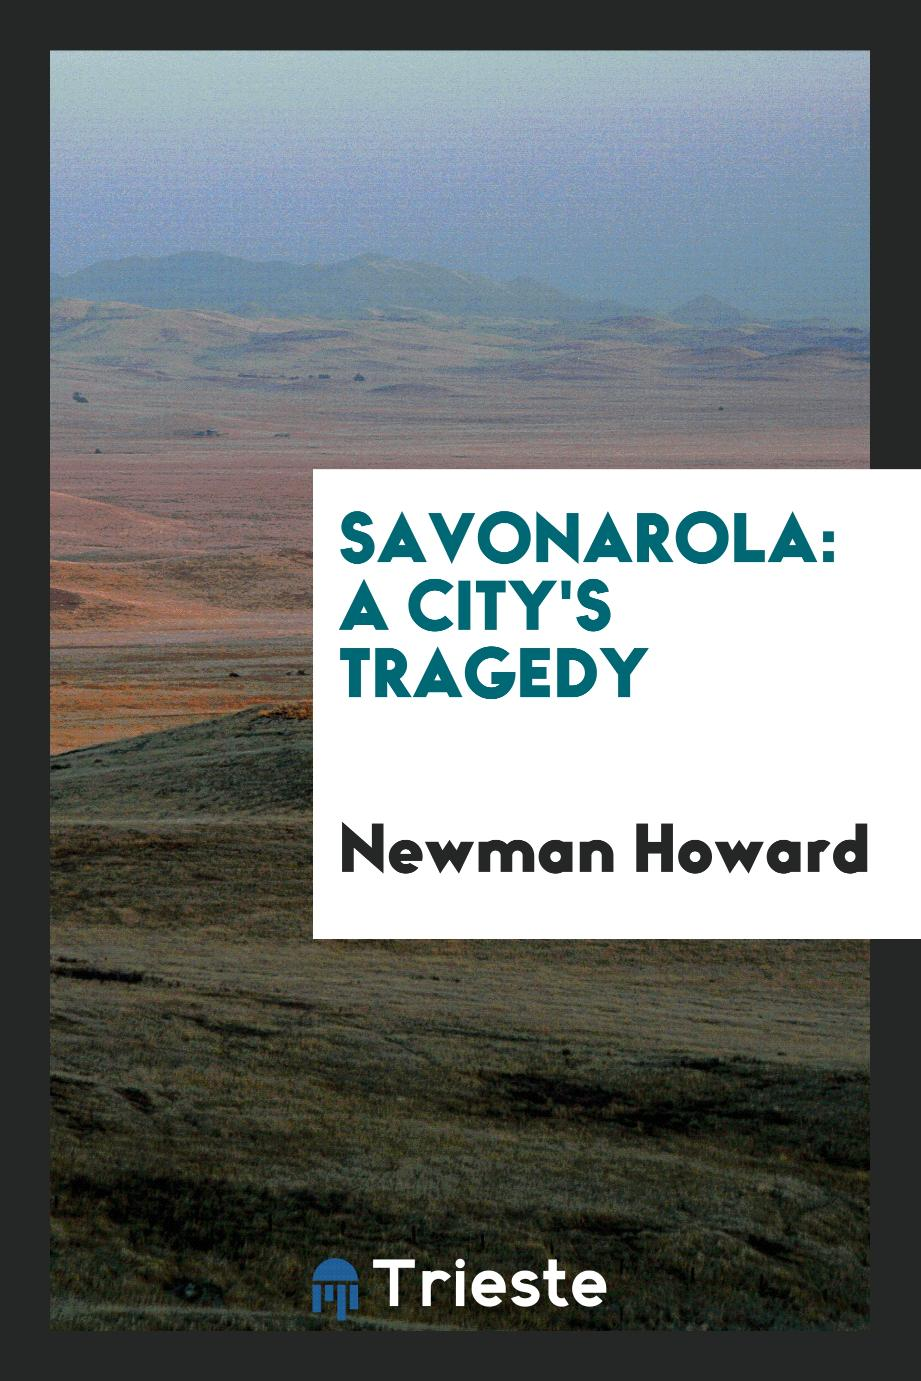 Newman Howard - Savonarola: A City's Tragedy